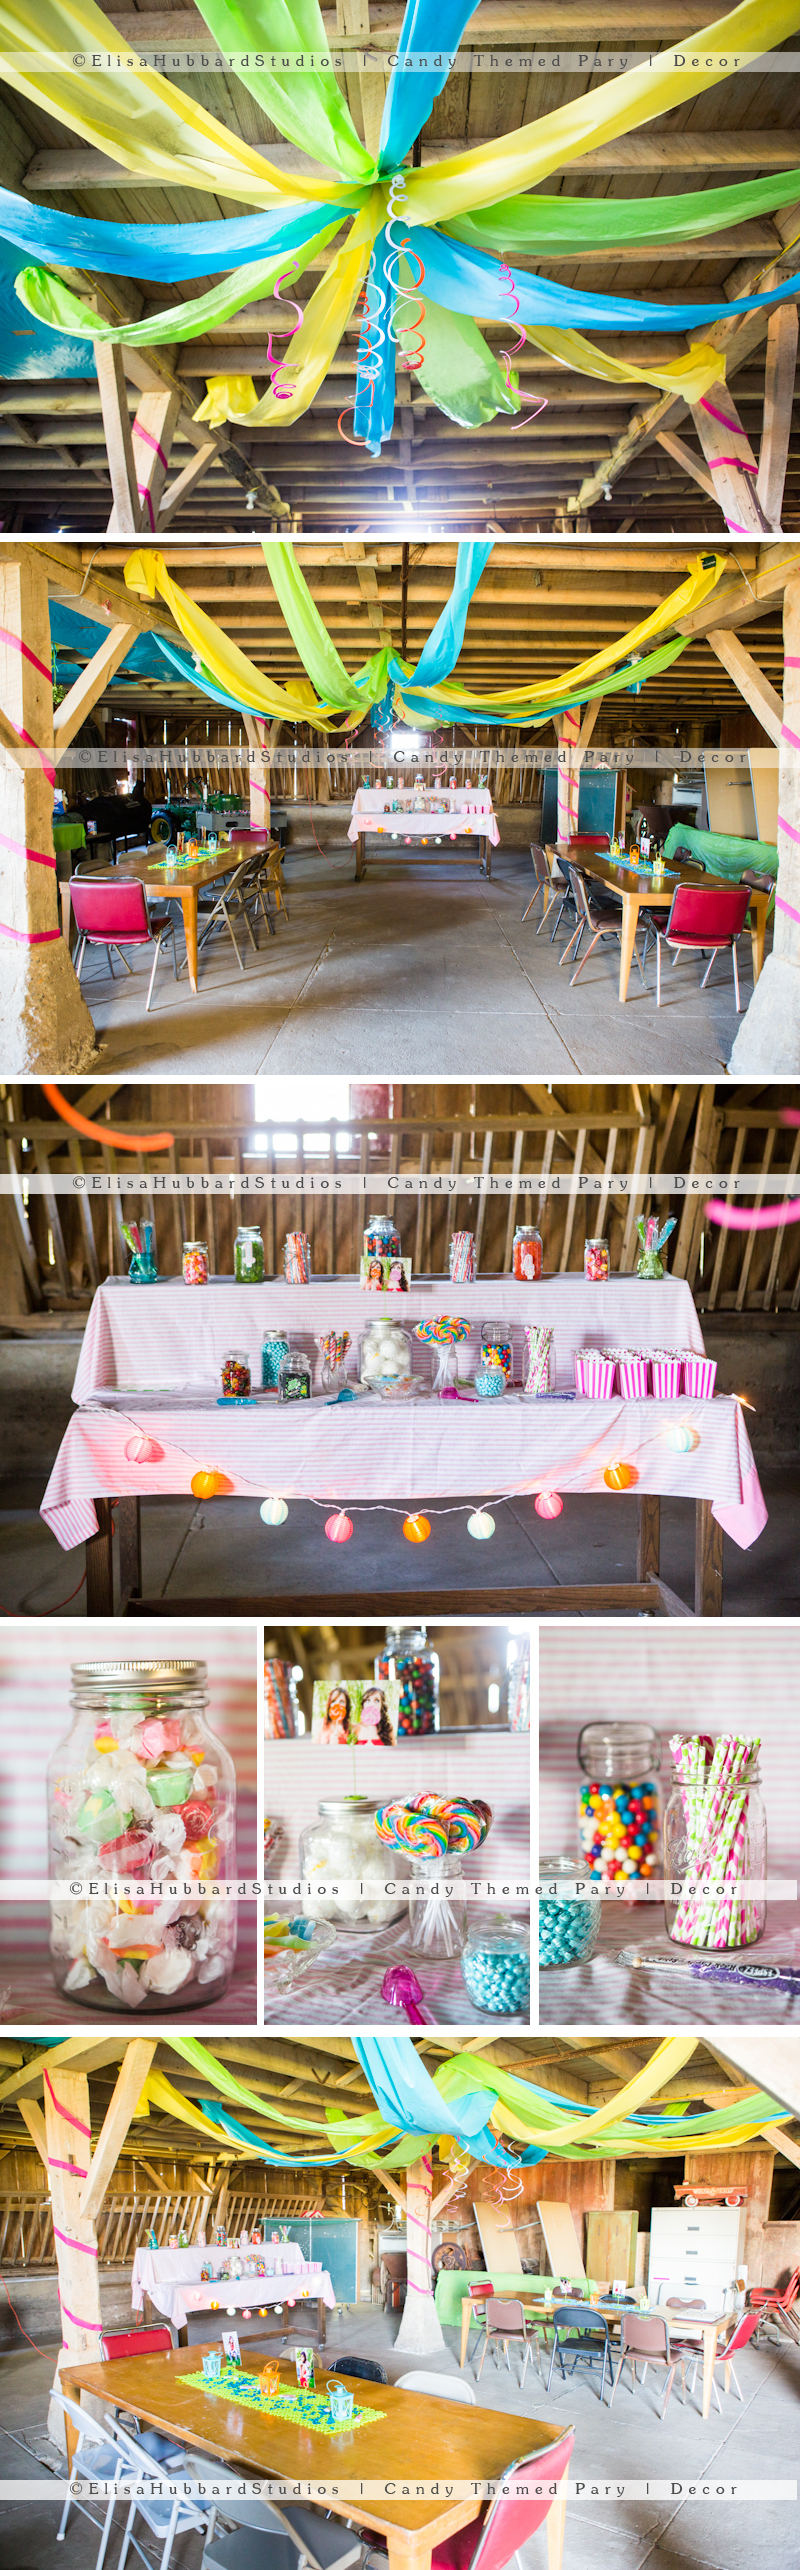 candy-themed-party-2-decor